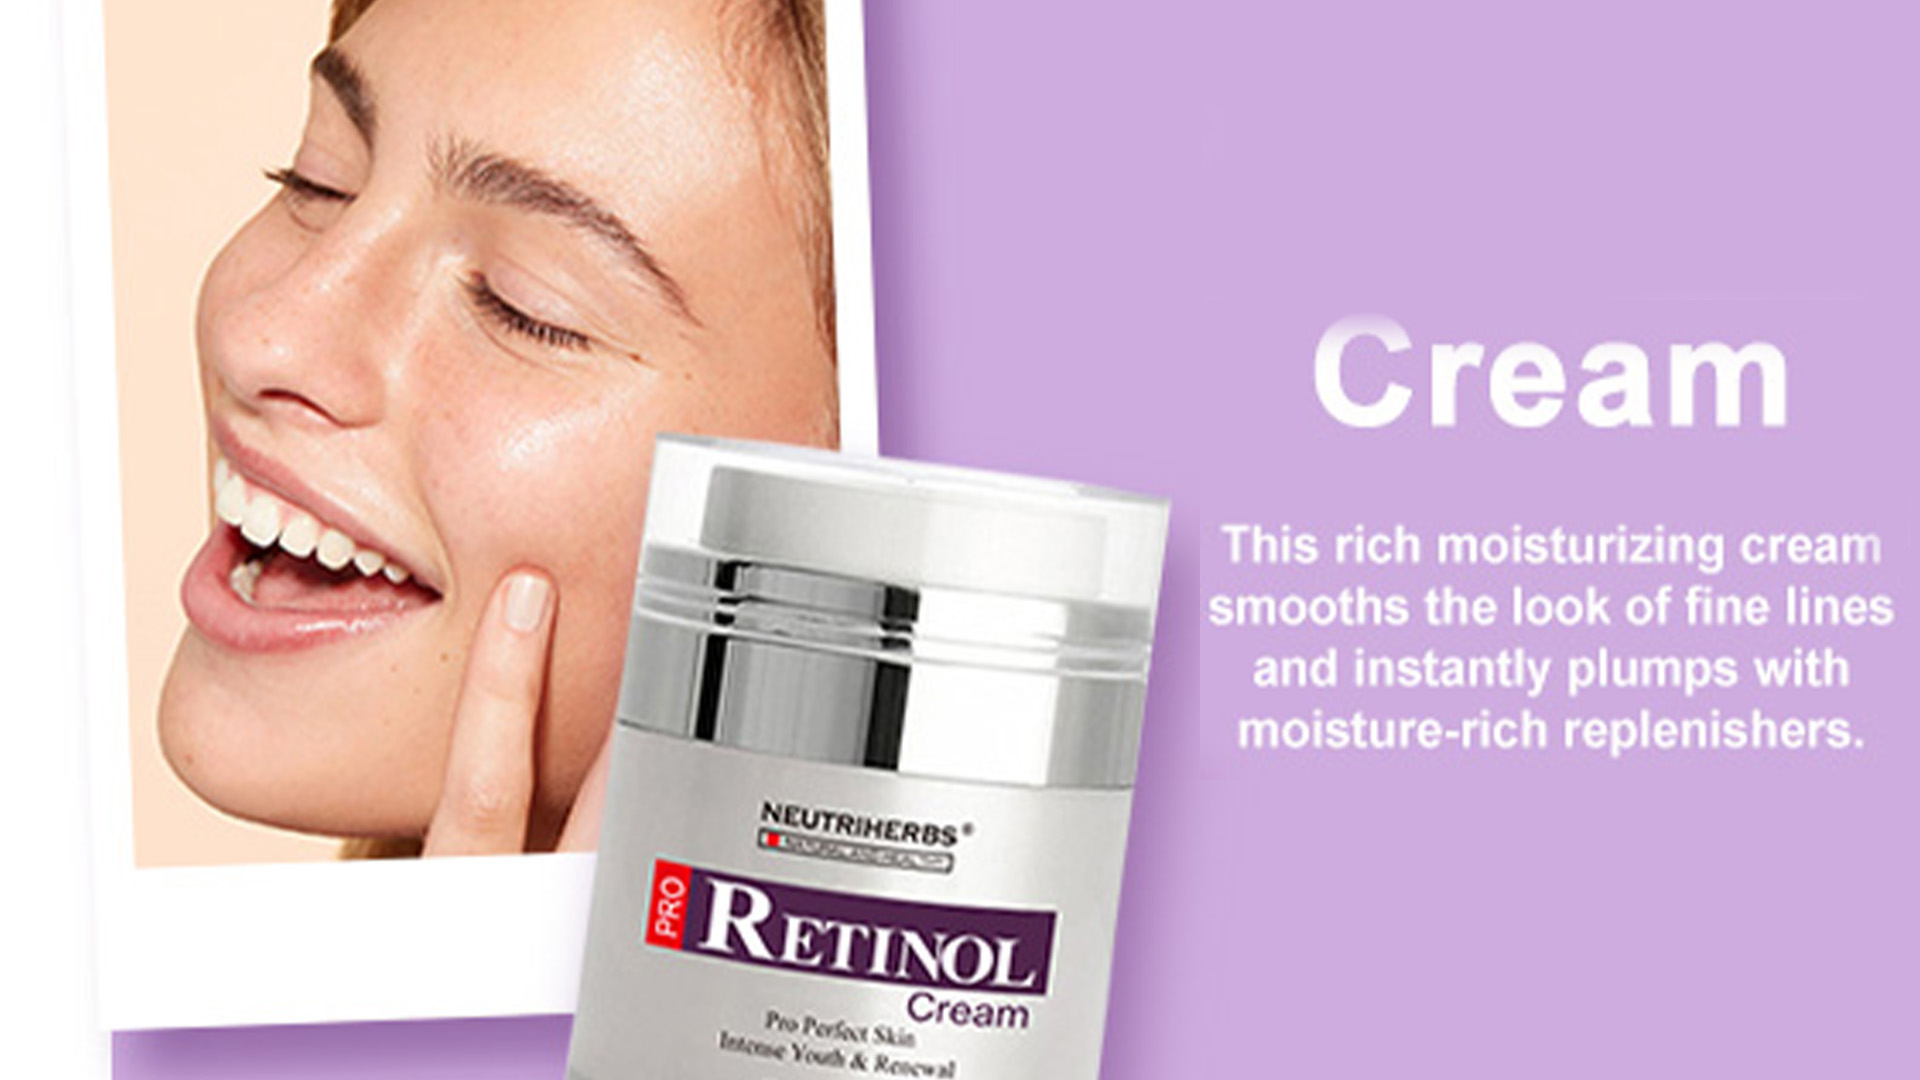 Herbal Perawatan Kulit Hydro Wajah Kerut Penghapusan Stretch Mark Anti Aging Retinol Cream